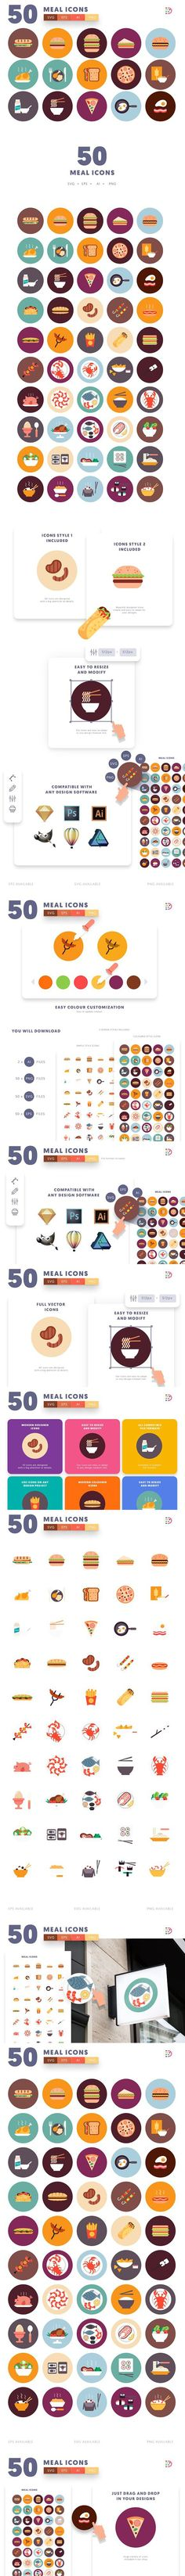 50 Meal Icons. Icons